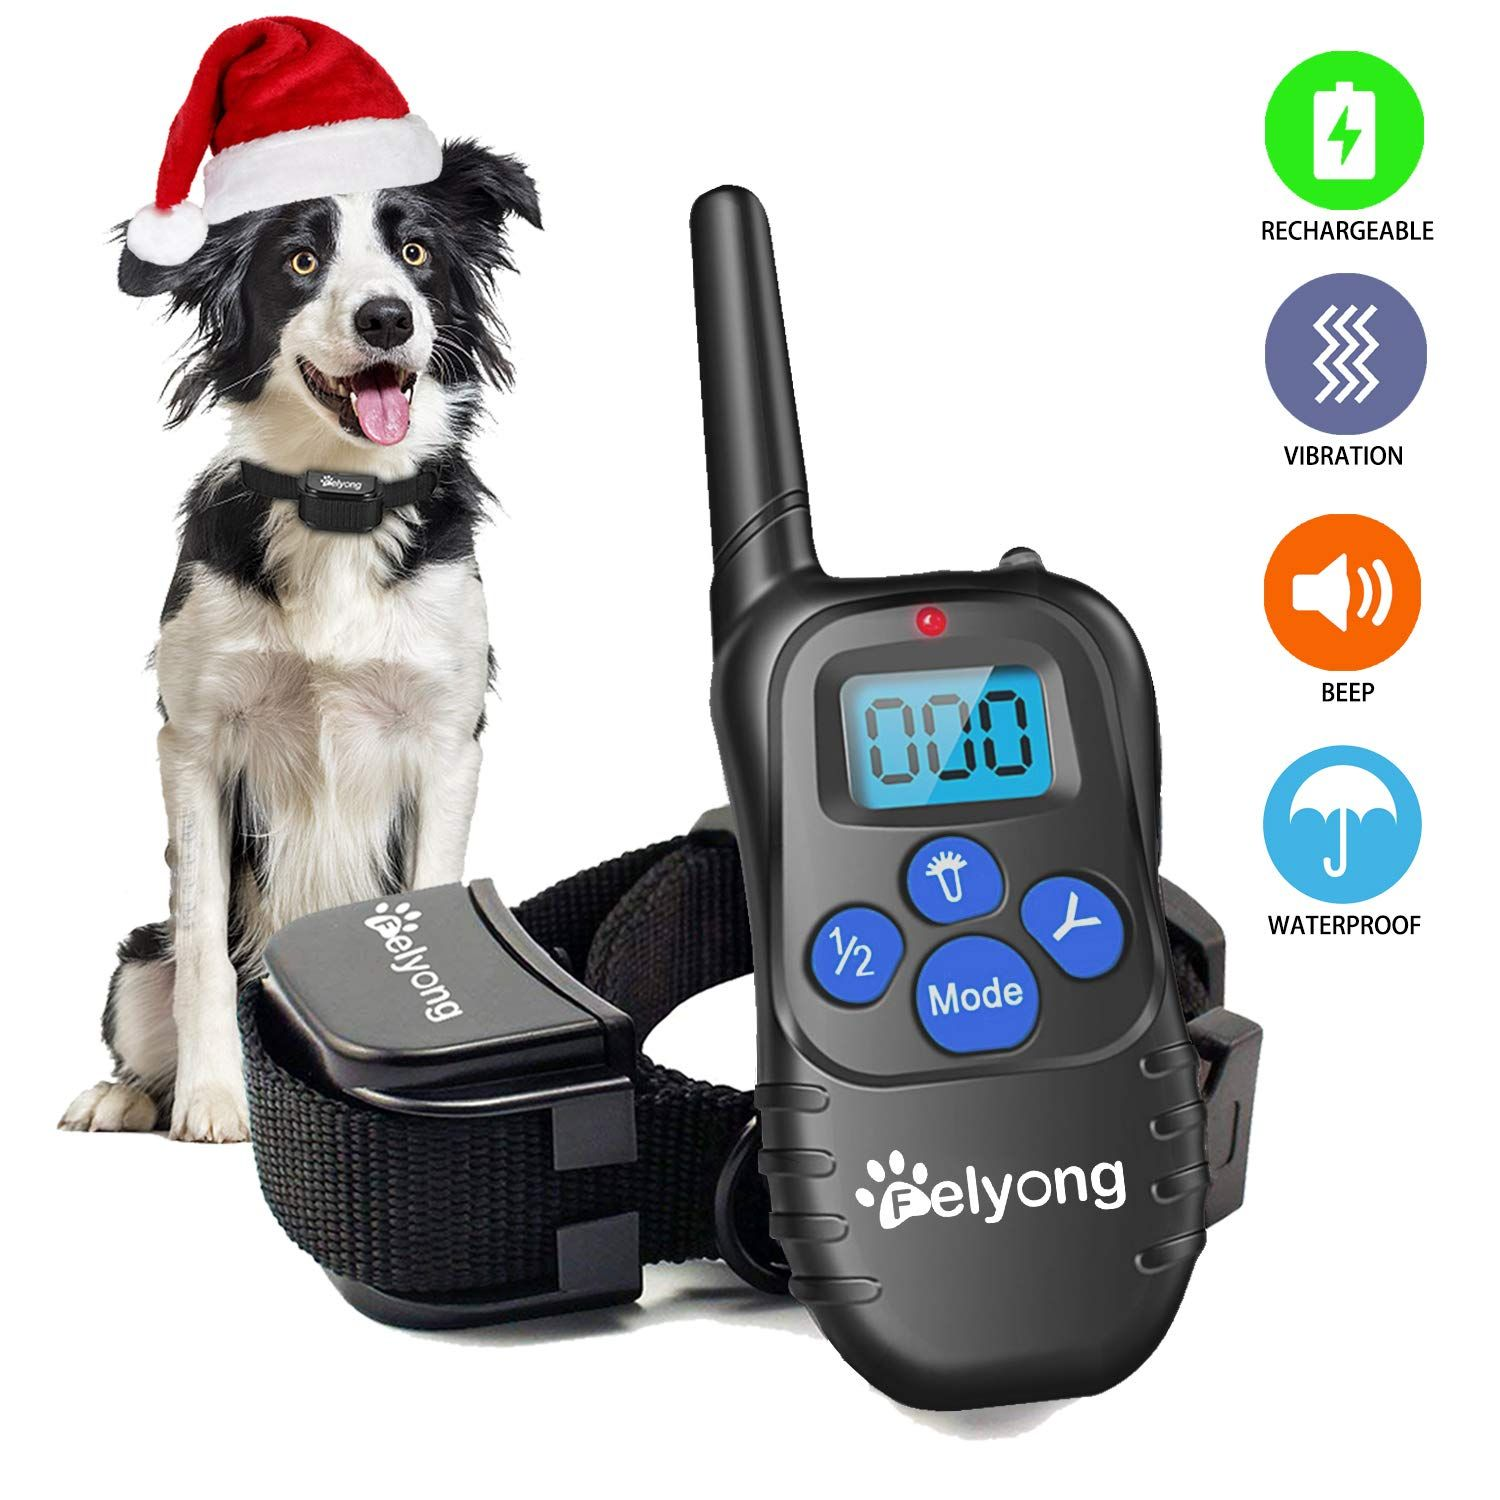 Felyong Dog Training Collar With Remote Rechargeable Waterproof